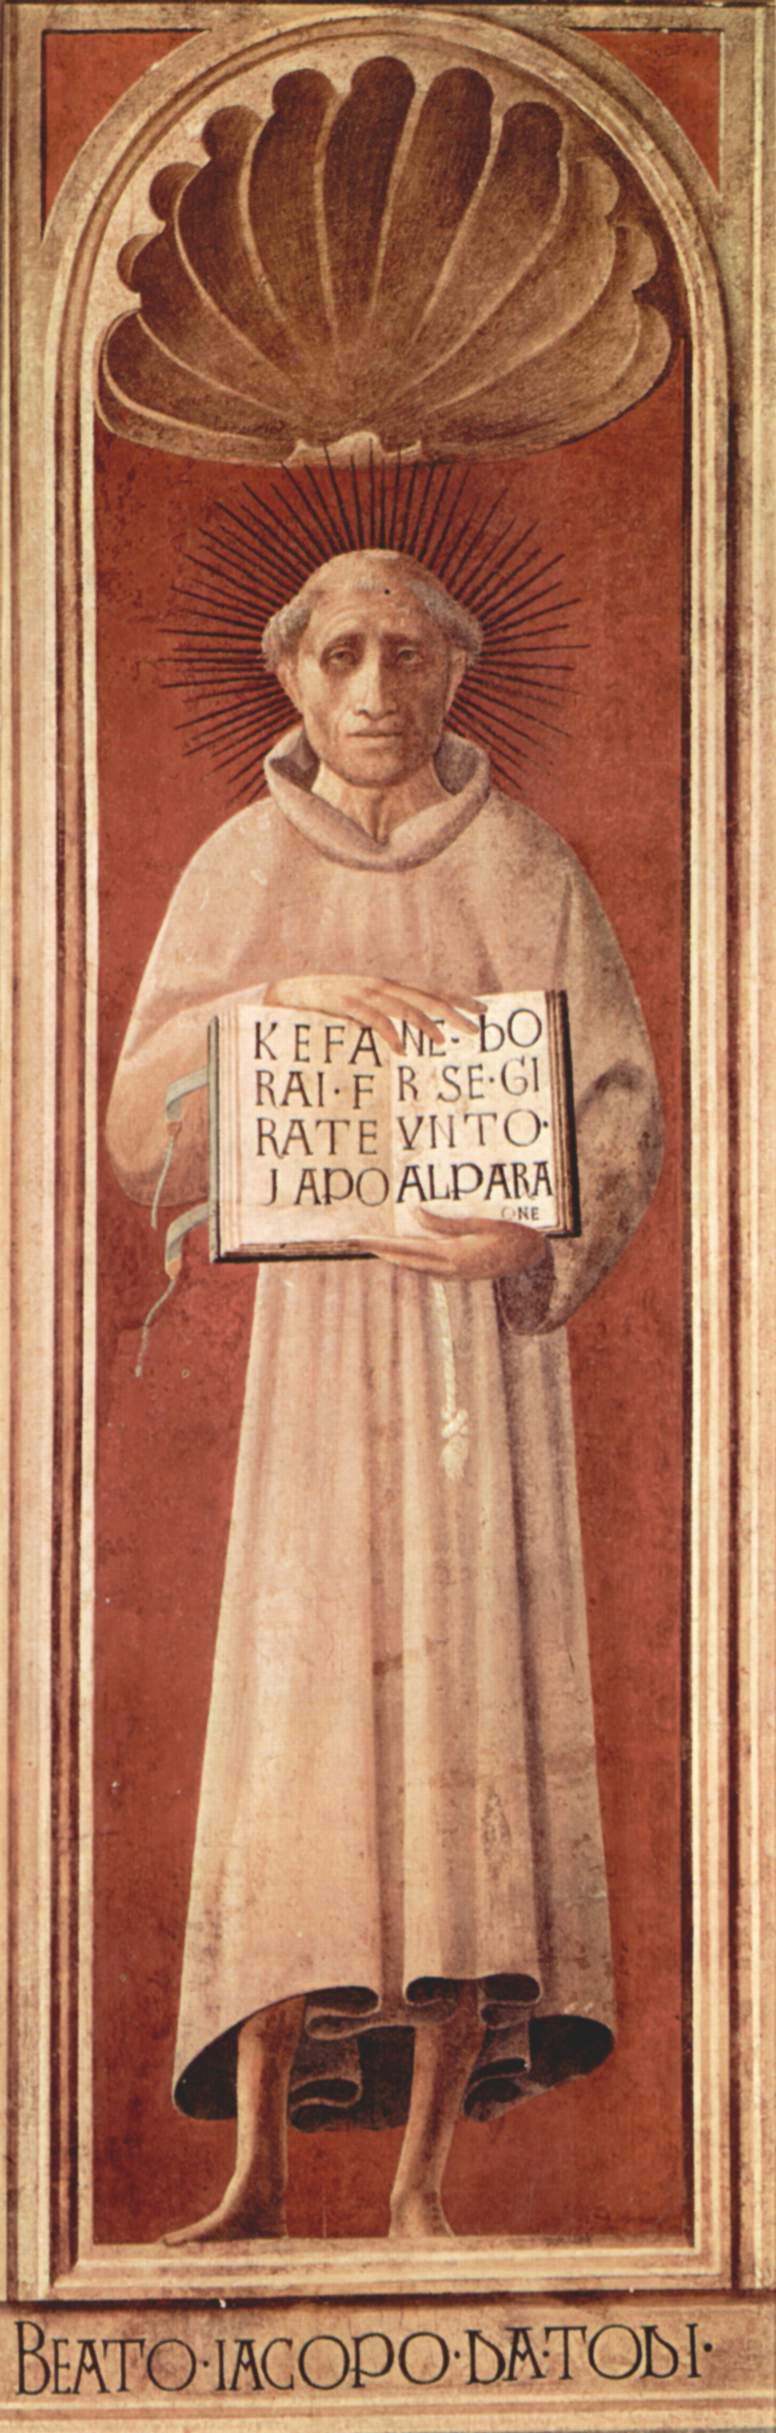 Paolo Uccello. The frescoes of the Cathedral in Prato. SV. James of Todi